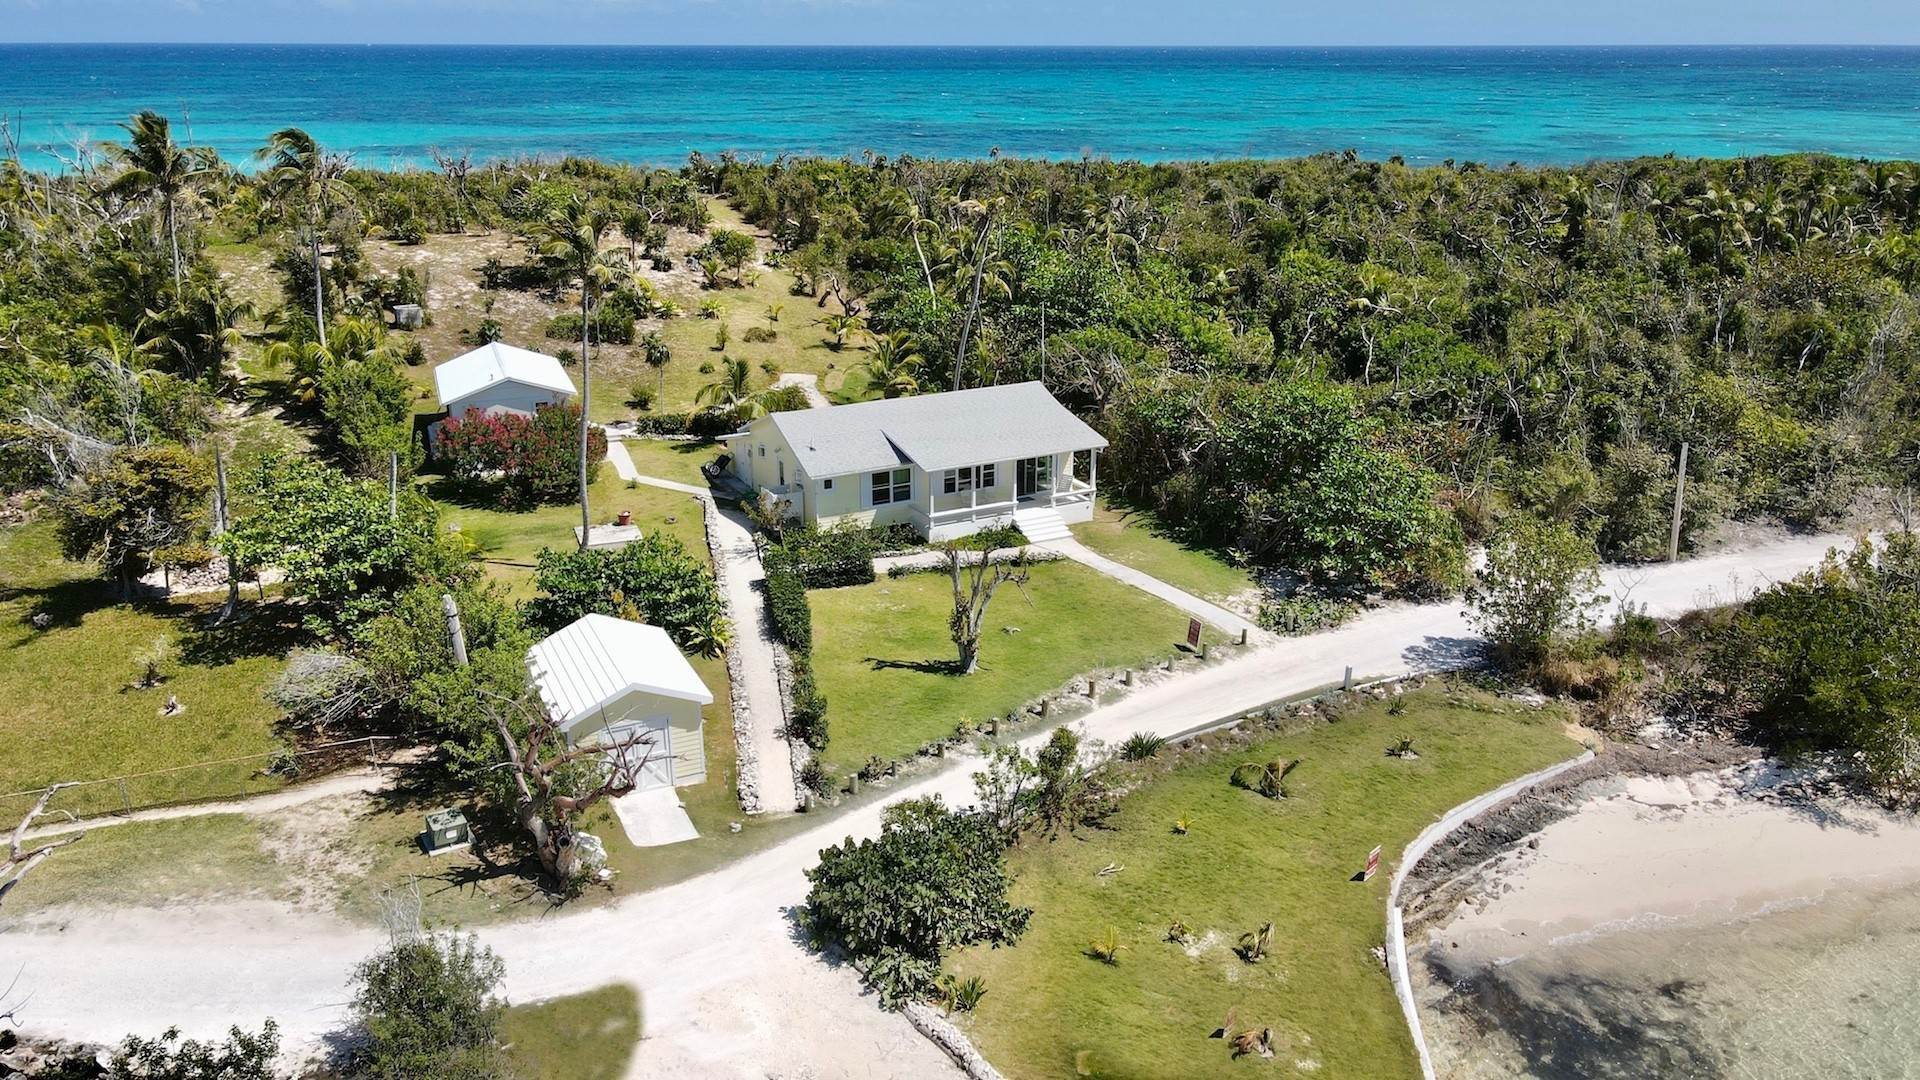 4. Single Family Homes for Sale at Sea to Sea - MLS 43964 Elbow Cay Hope Town, Abaco, Bahamas